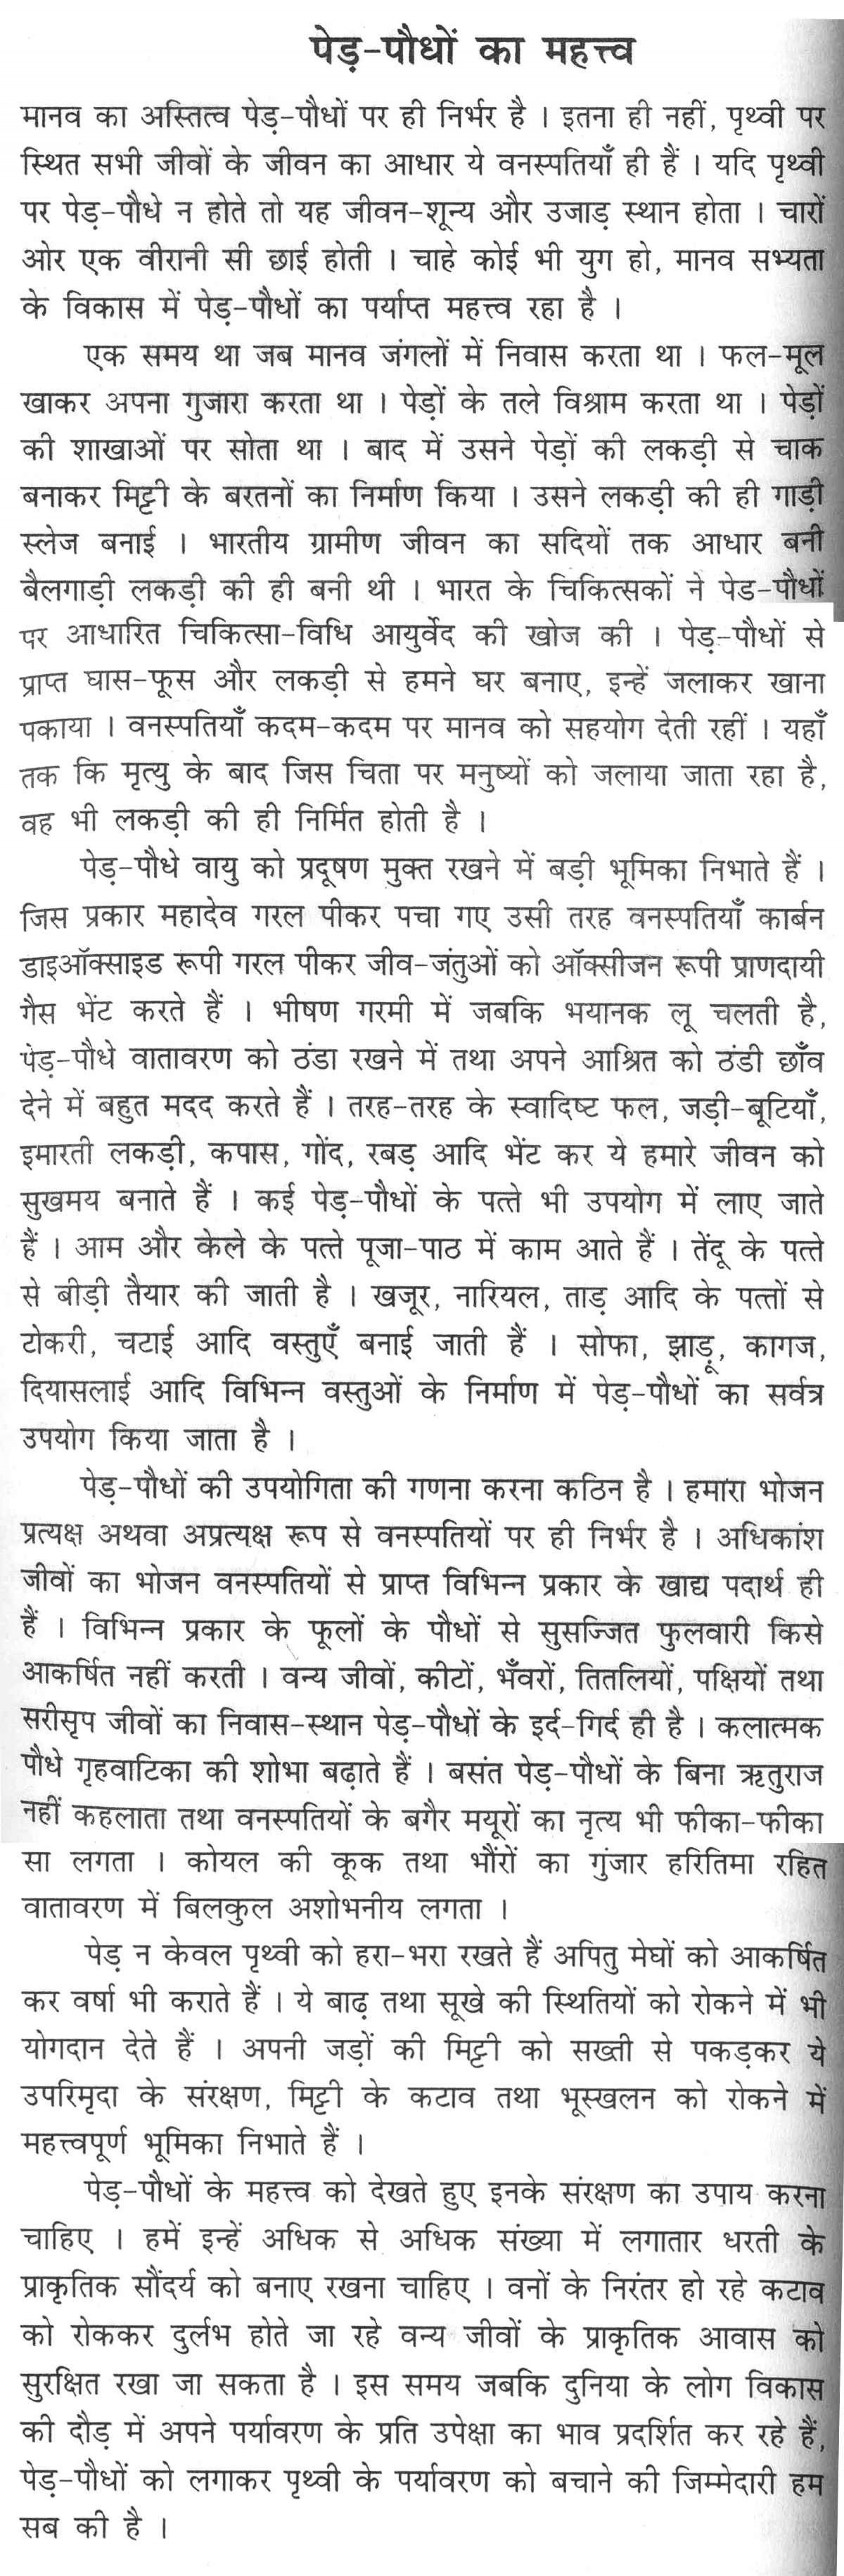 009 Essay Example Importance Of Family Nothing Found For On Plants And Tree L Dreaded Class 1 In Hindi Outline 1920